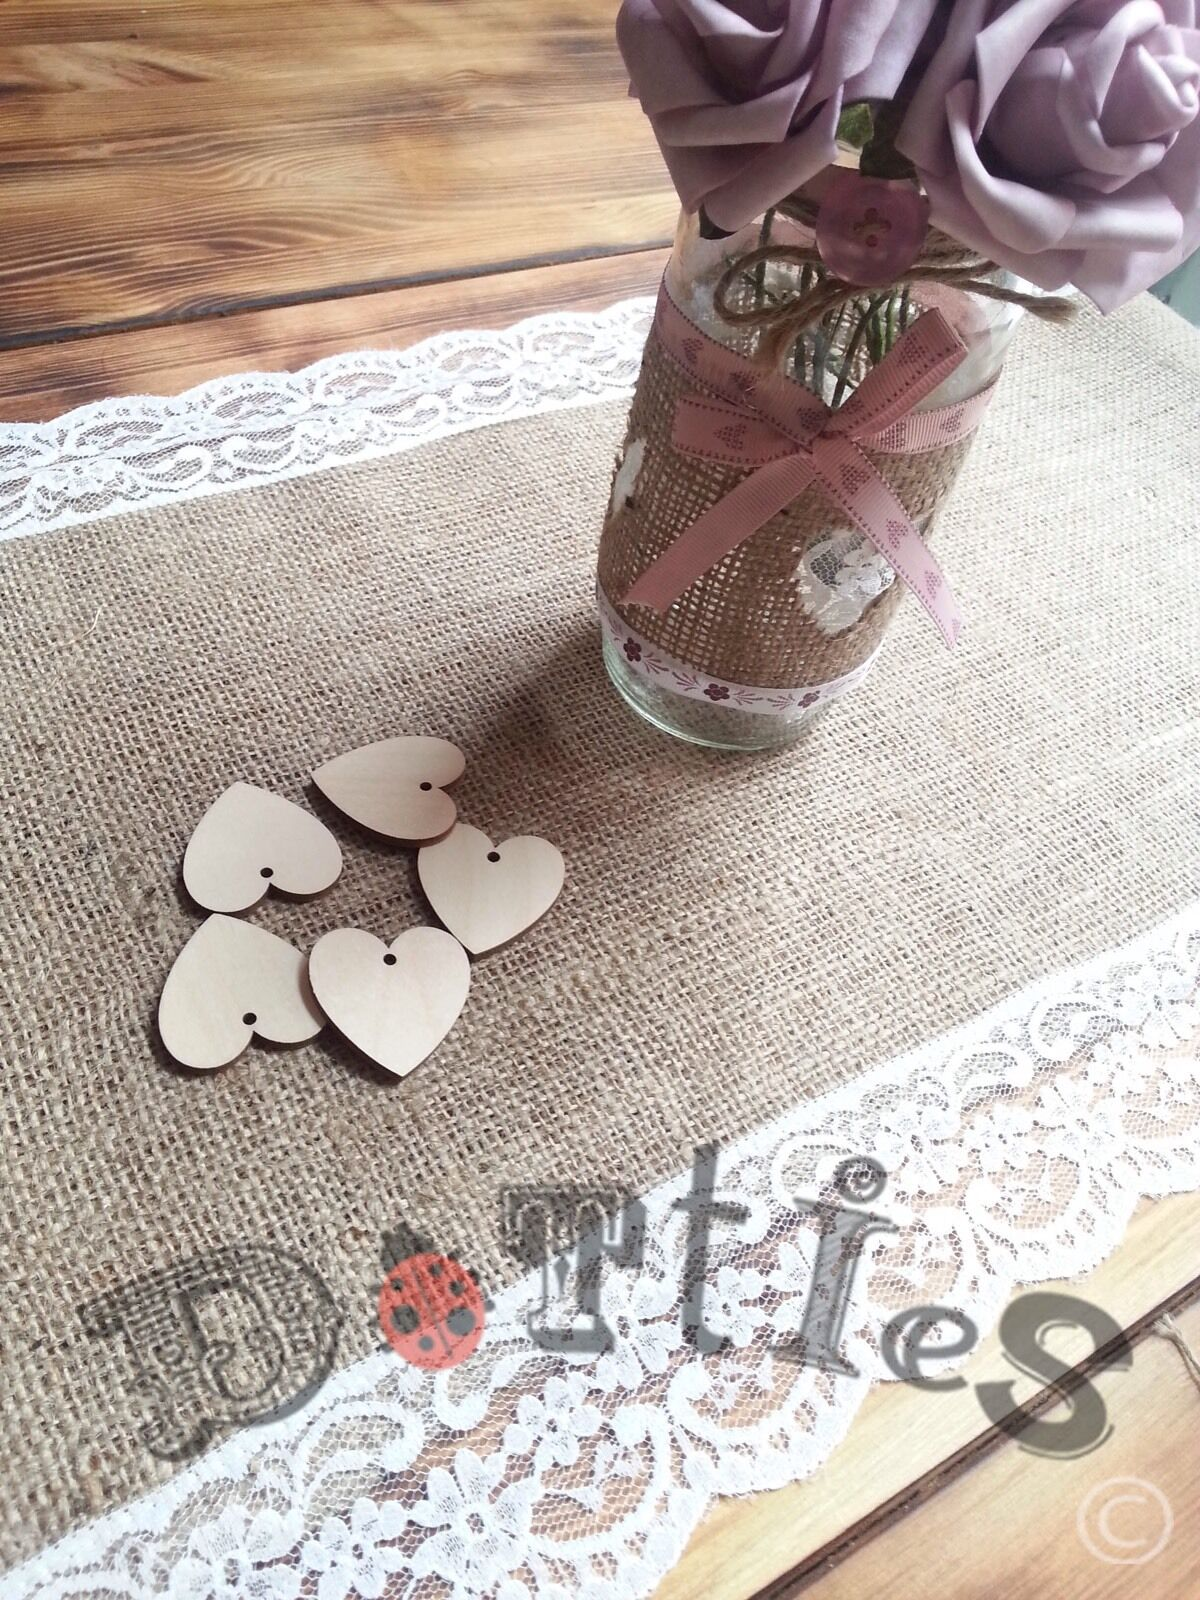 42ft Beautiful Handmade Hessian and Lace Table Runners